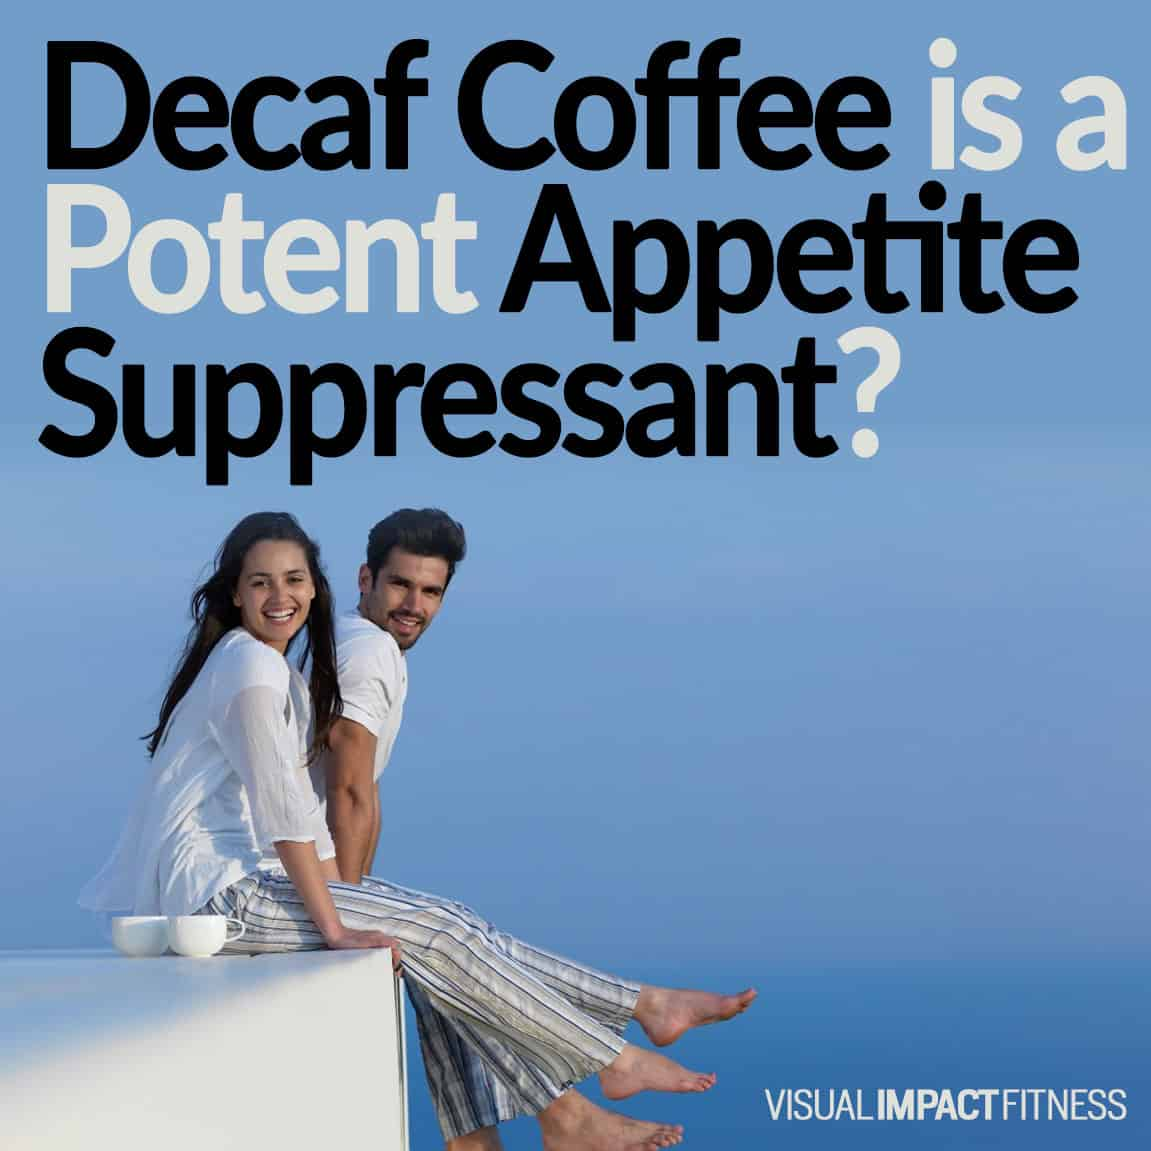 Decaf Coffee is a Potent Appetite Suppressant?